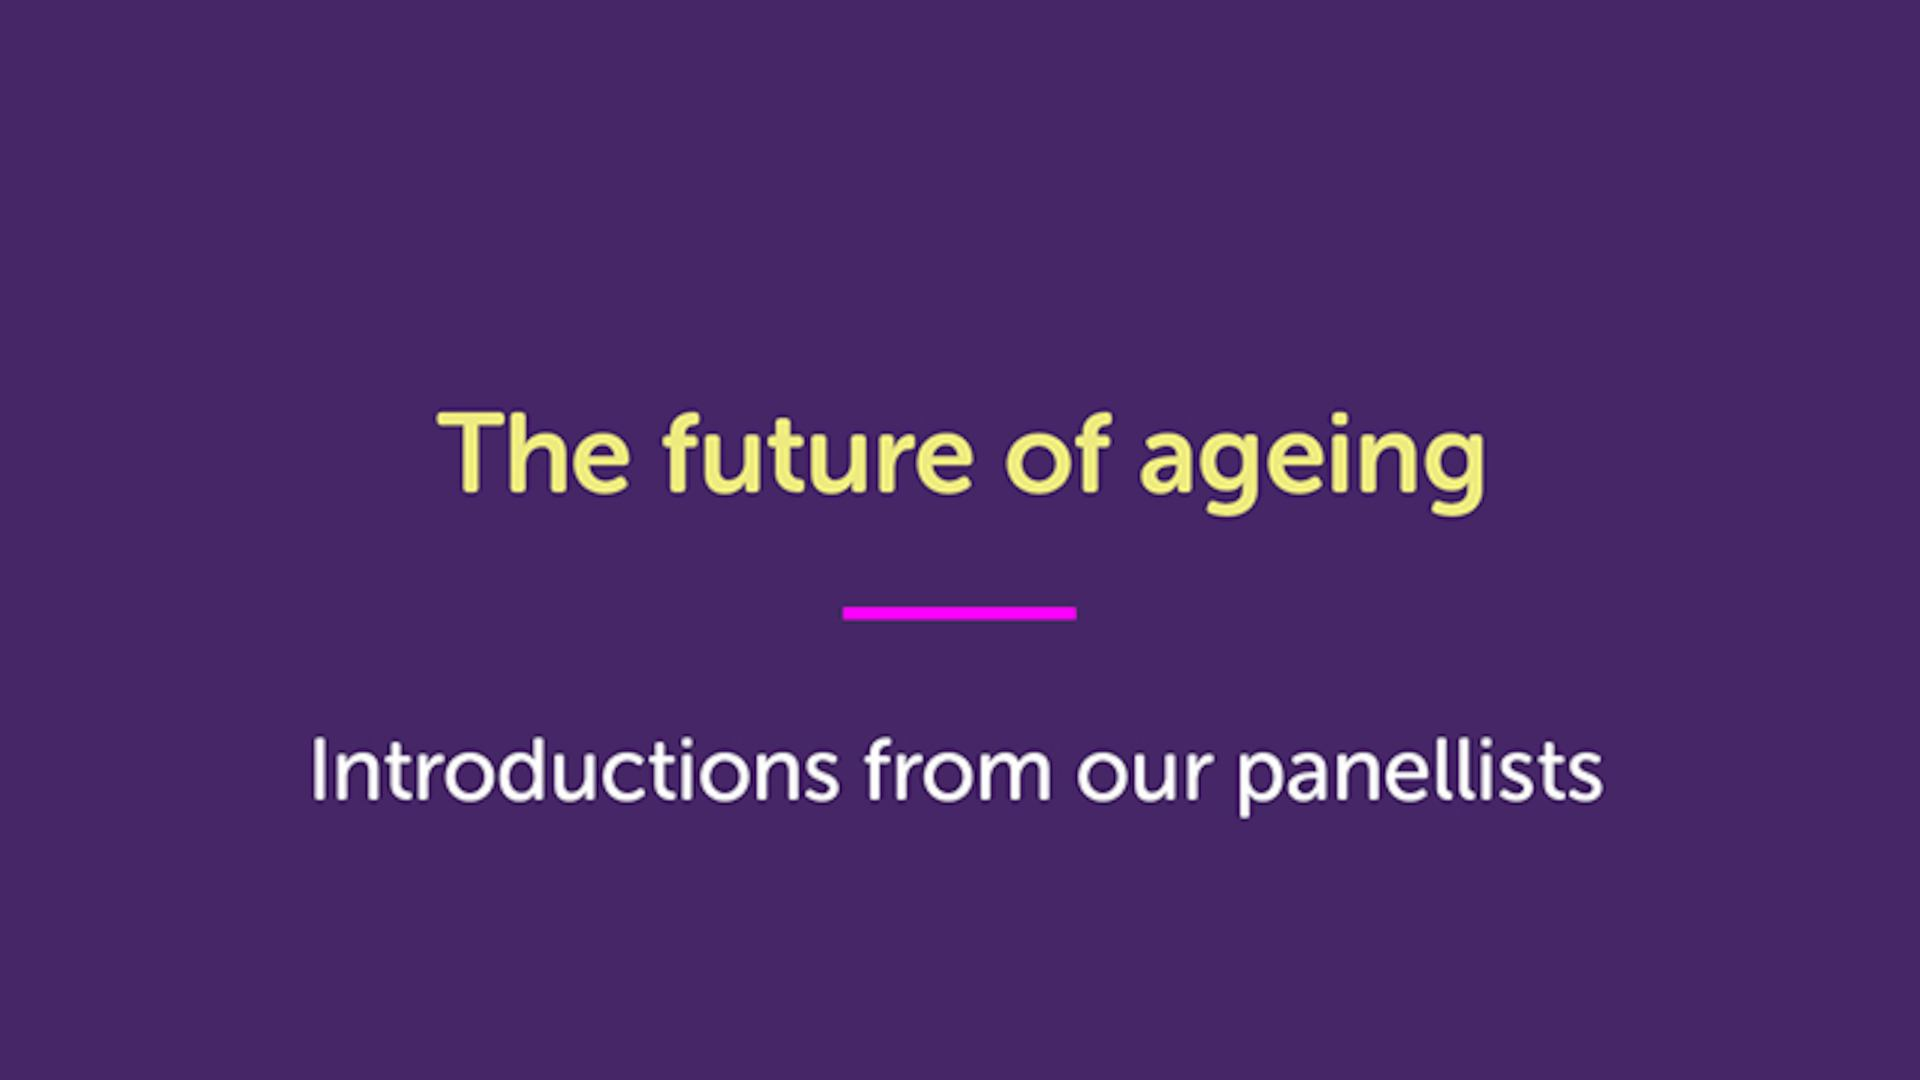 watch the introductions from our panellists